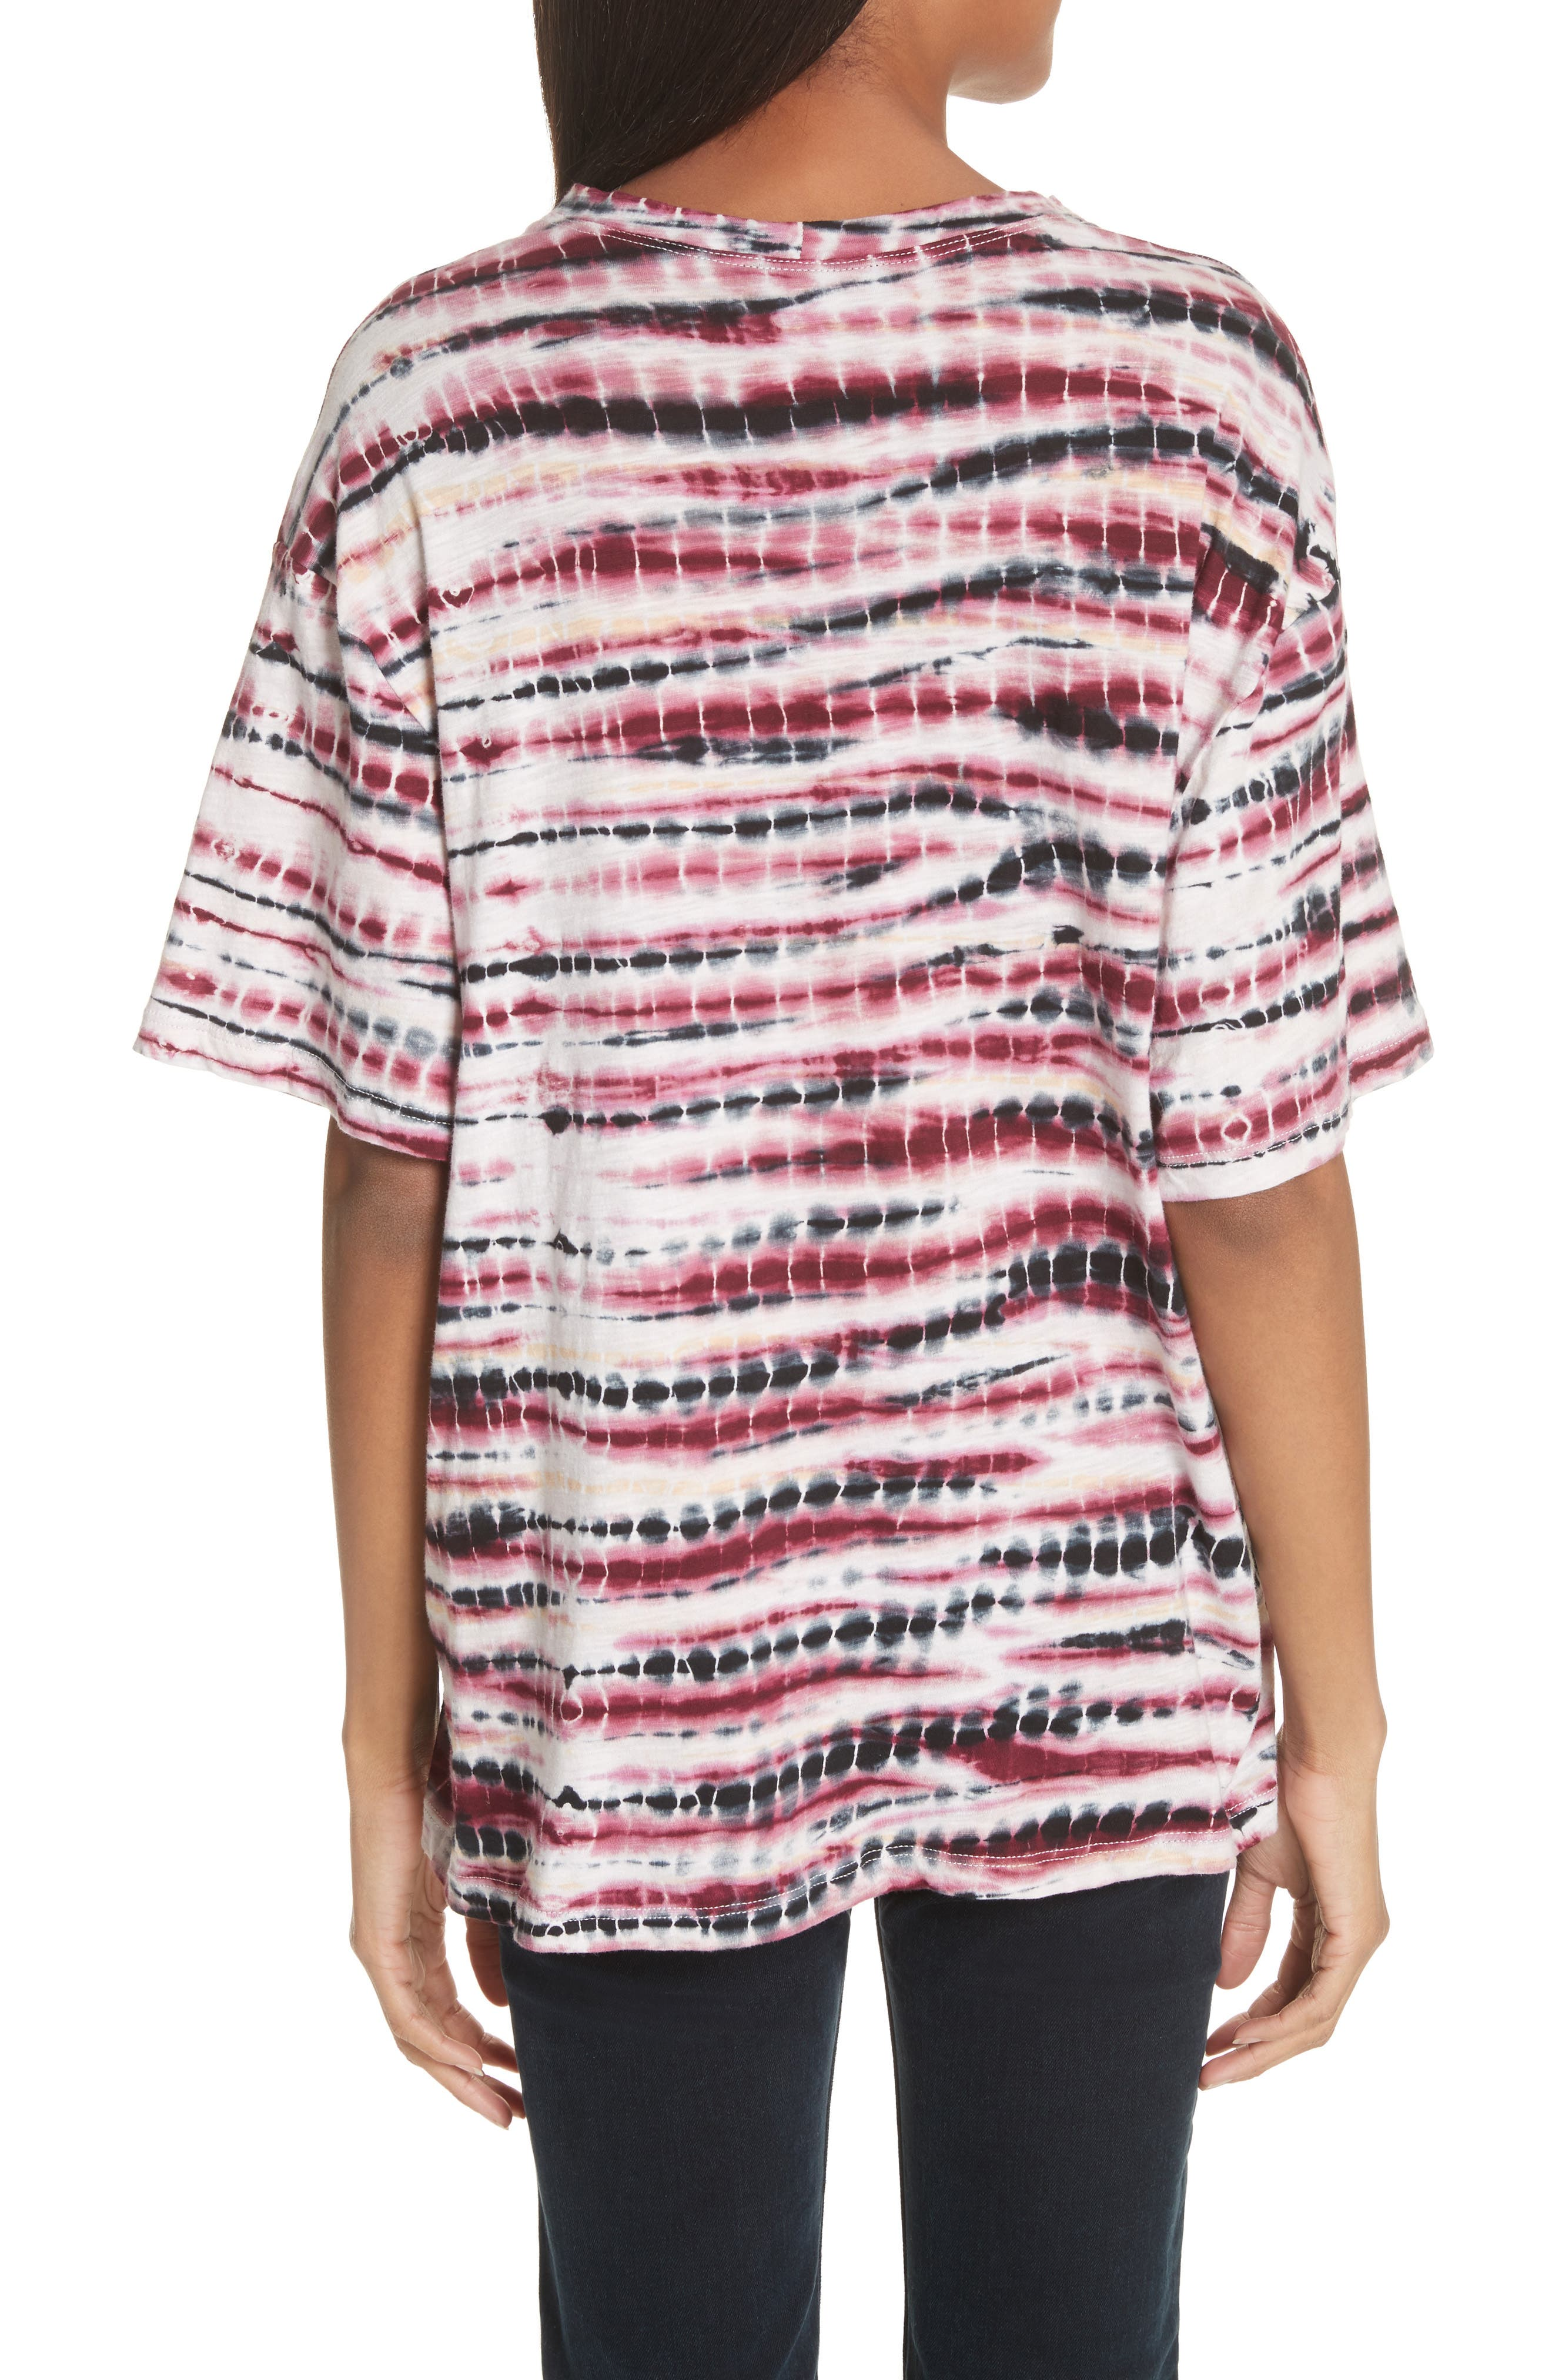 PROENZA SCHOULER,                             Tie Dye Tissue Jersey Tee,                             Alternate thumbnail 2, color,                             930